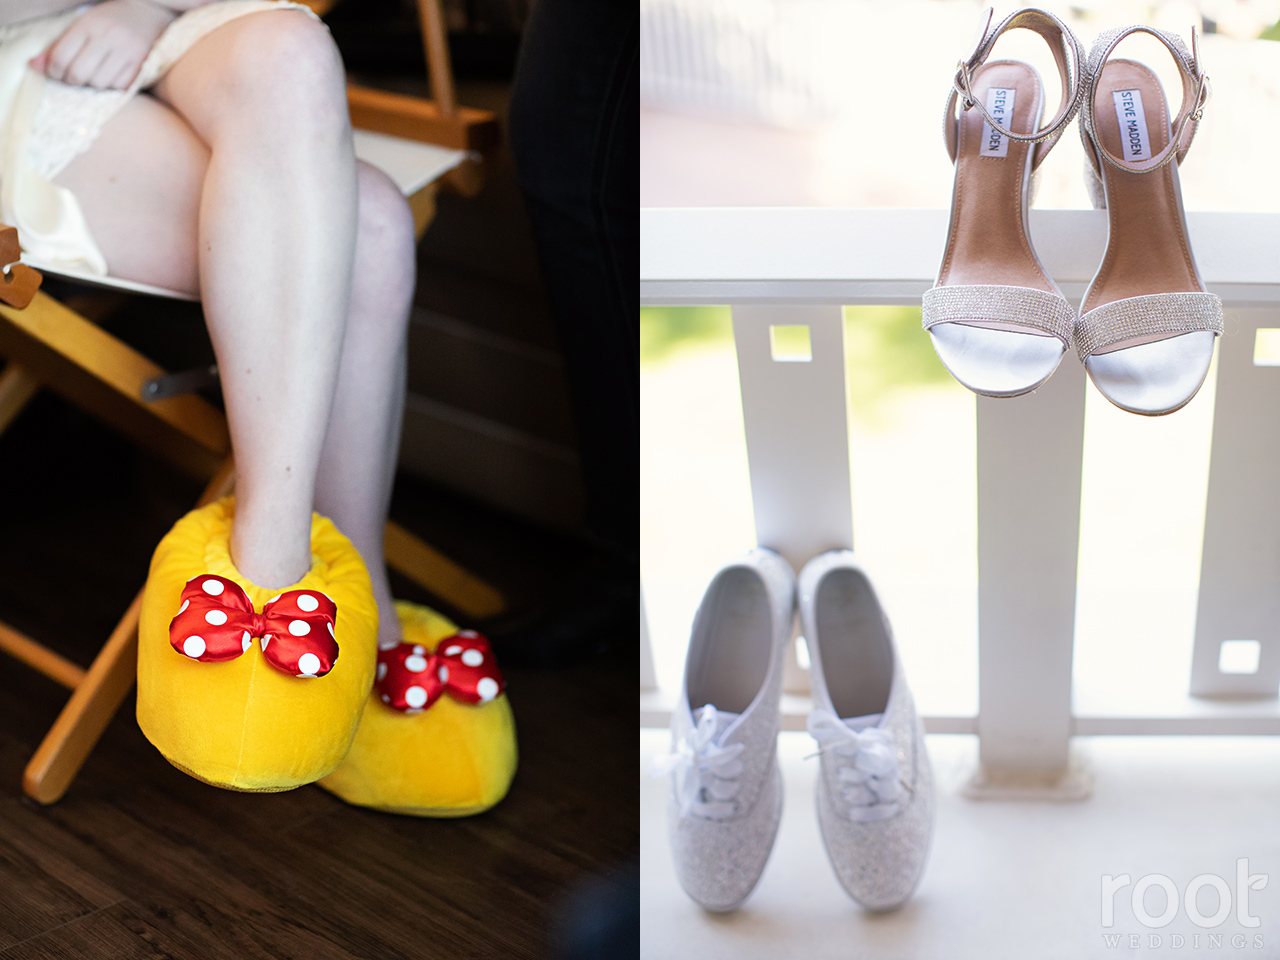 One day of bridal footwear : Minnie slippers, heels, and Kate Spade glitter Keds